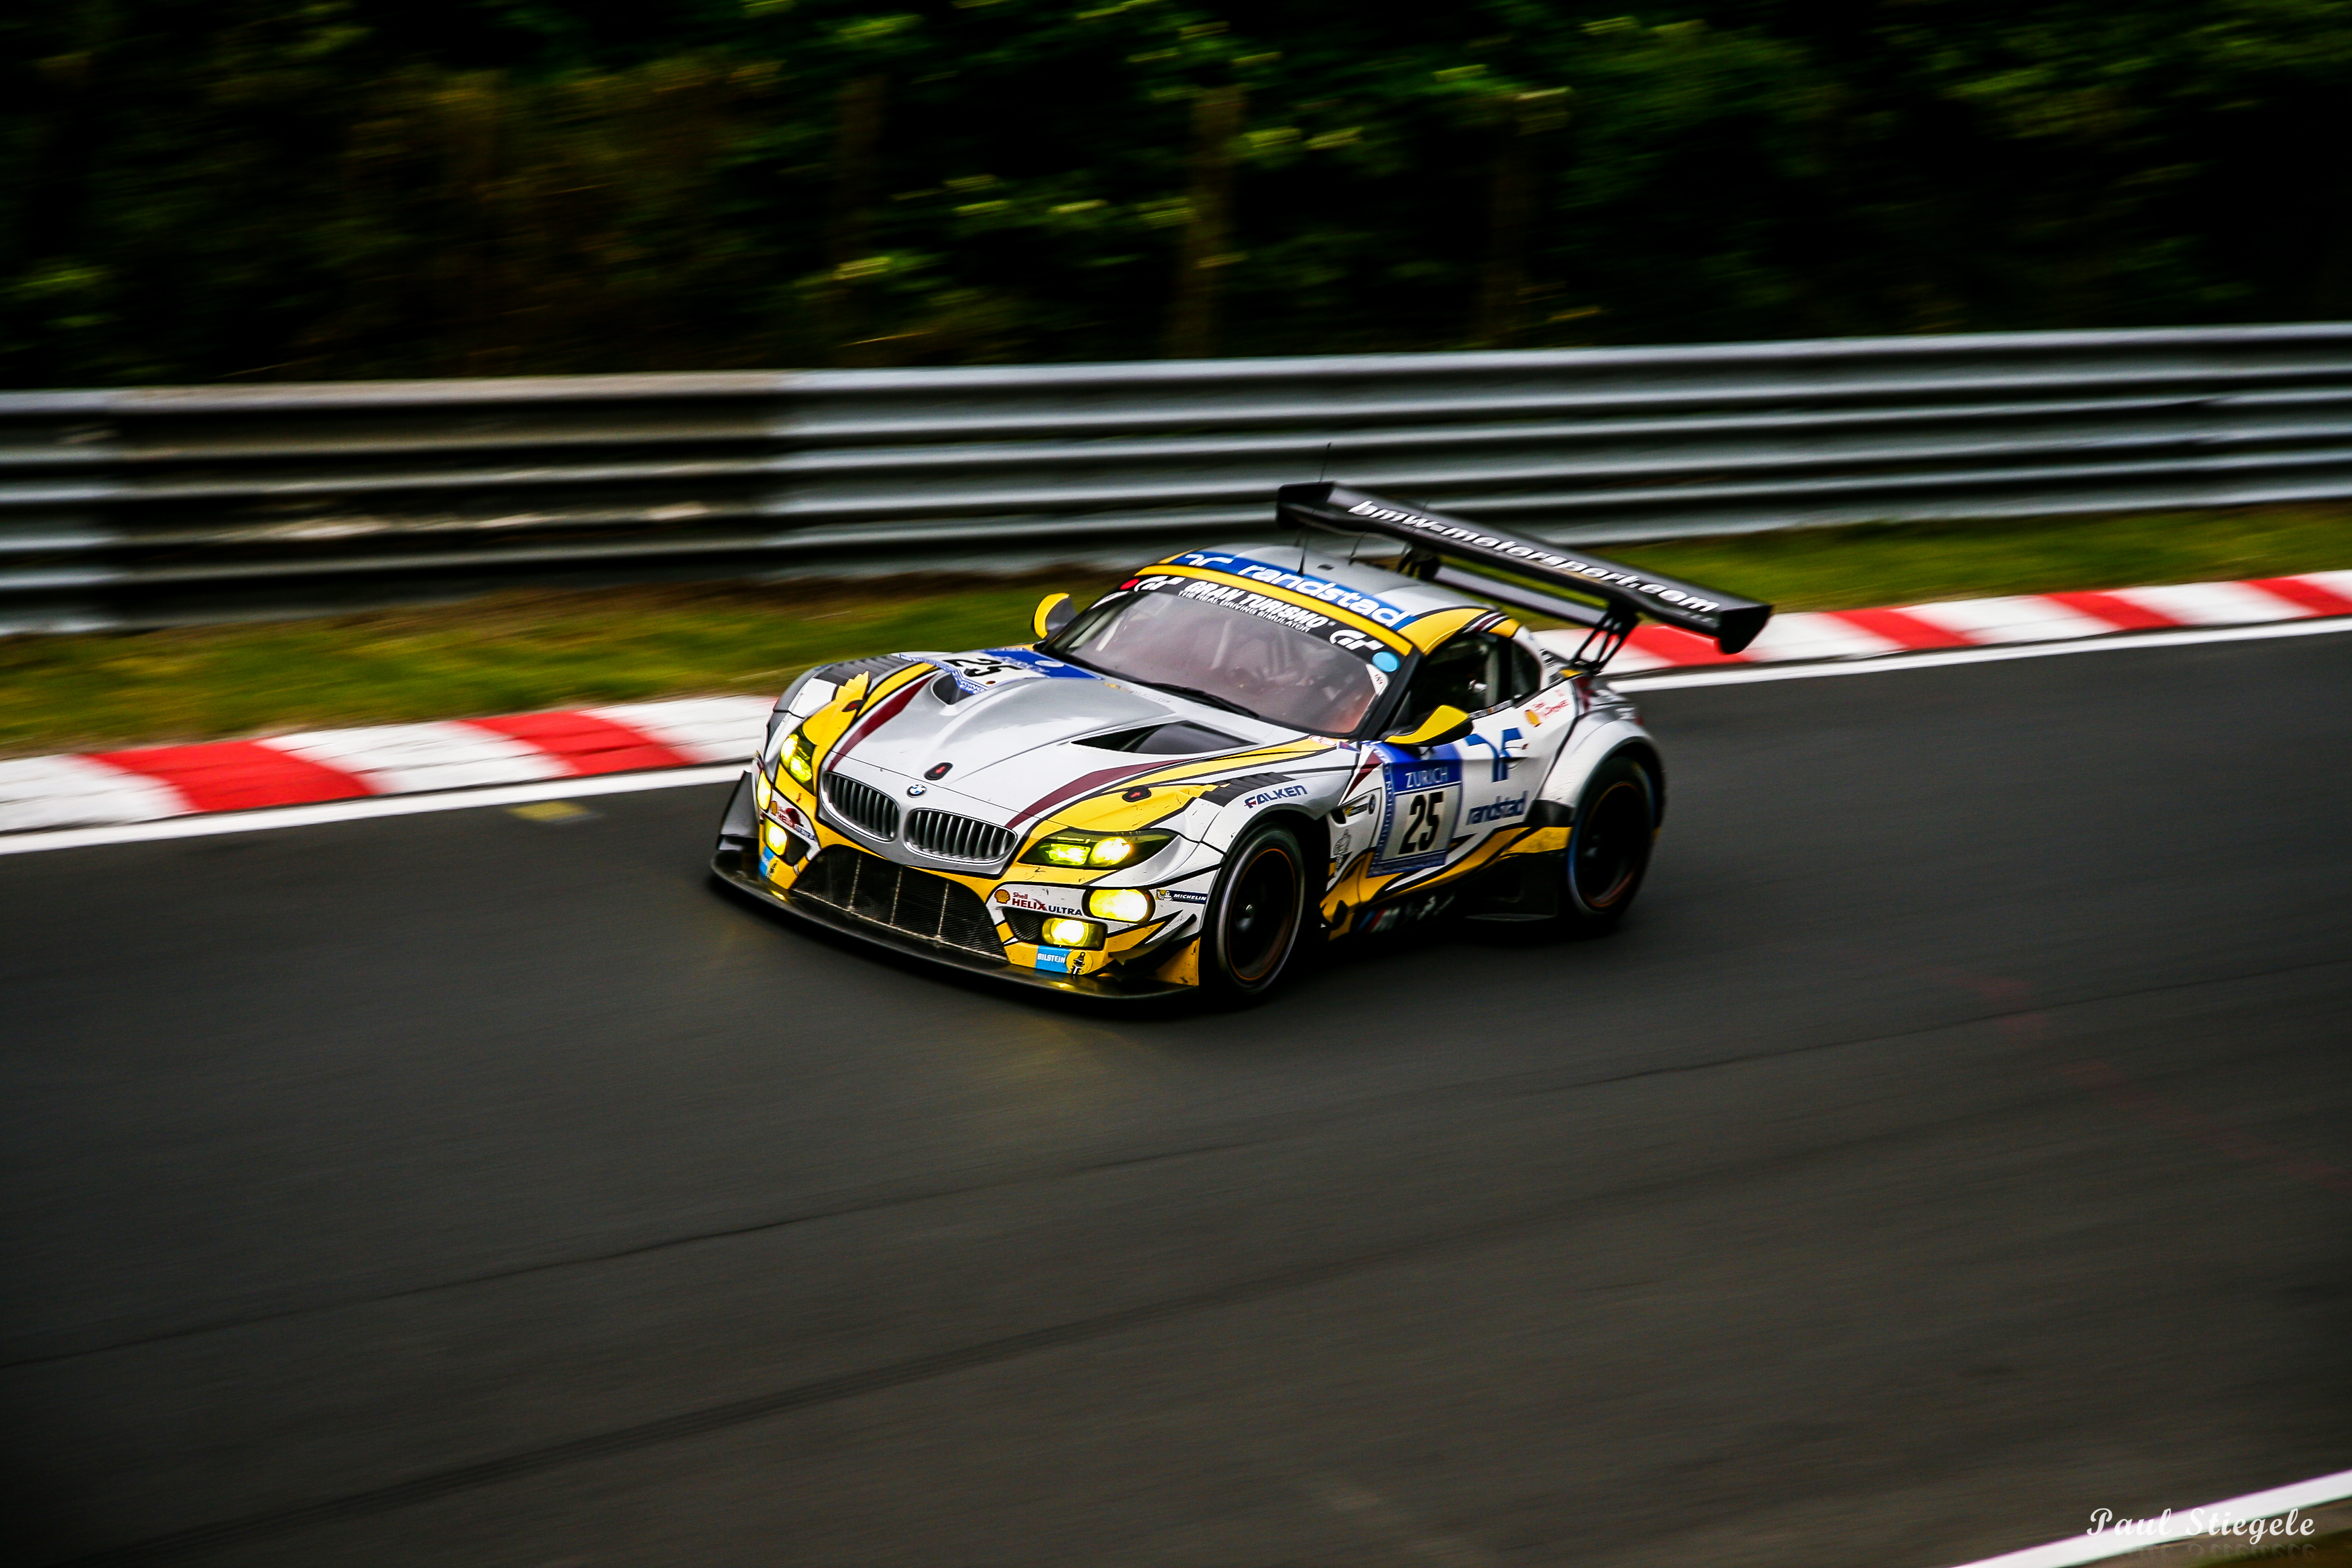 Bmw Z4 Gt3 On The Famous N 252 Rburgring Nordschleife While